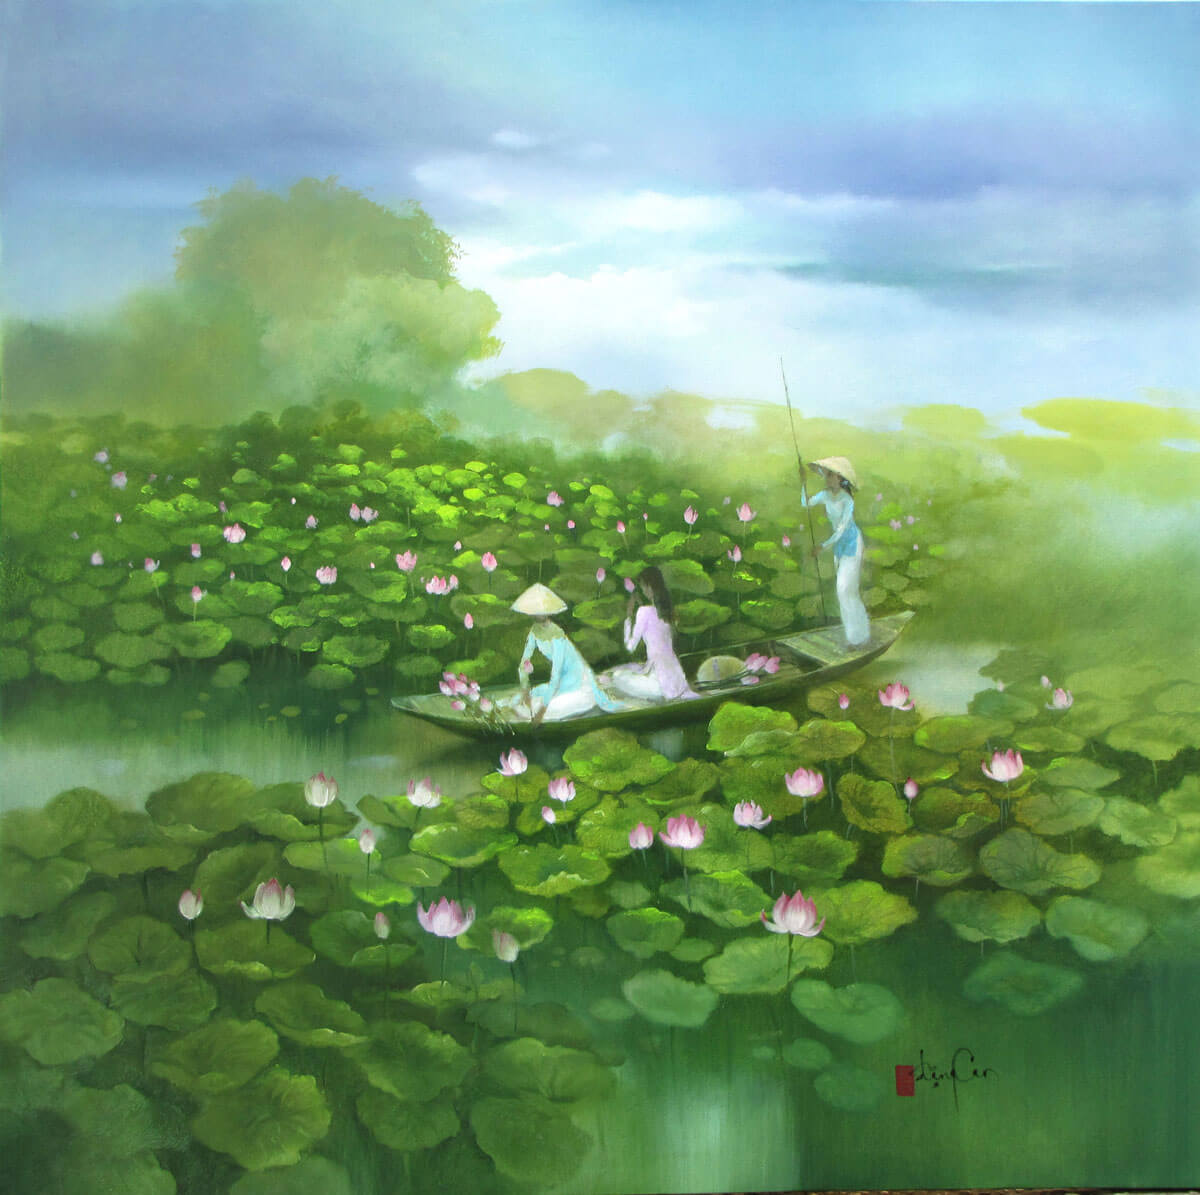 Lotus pond-Original Vietnamese Art